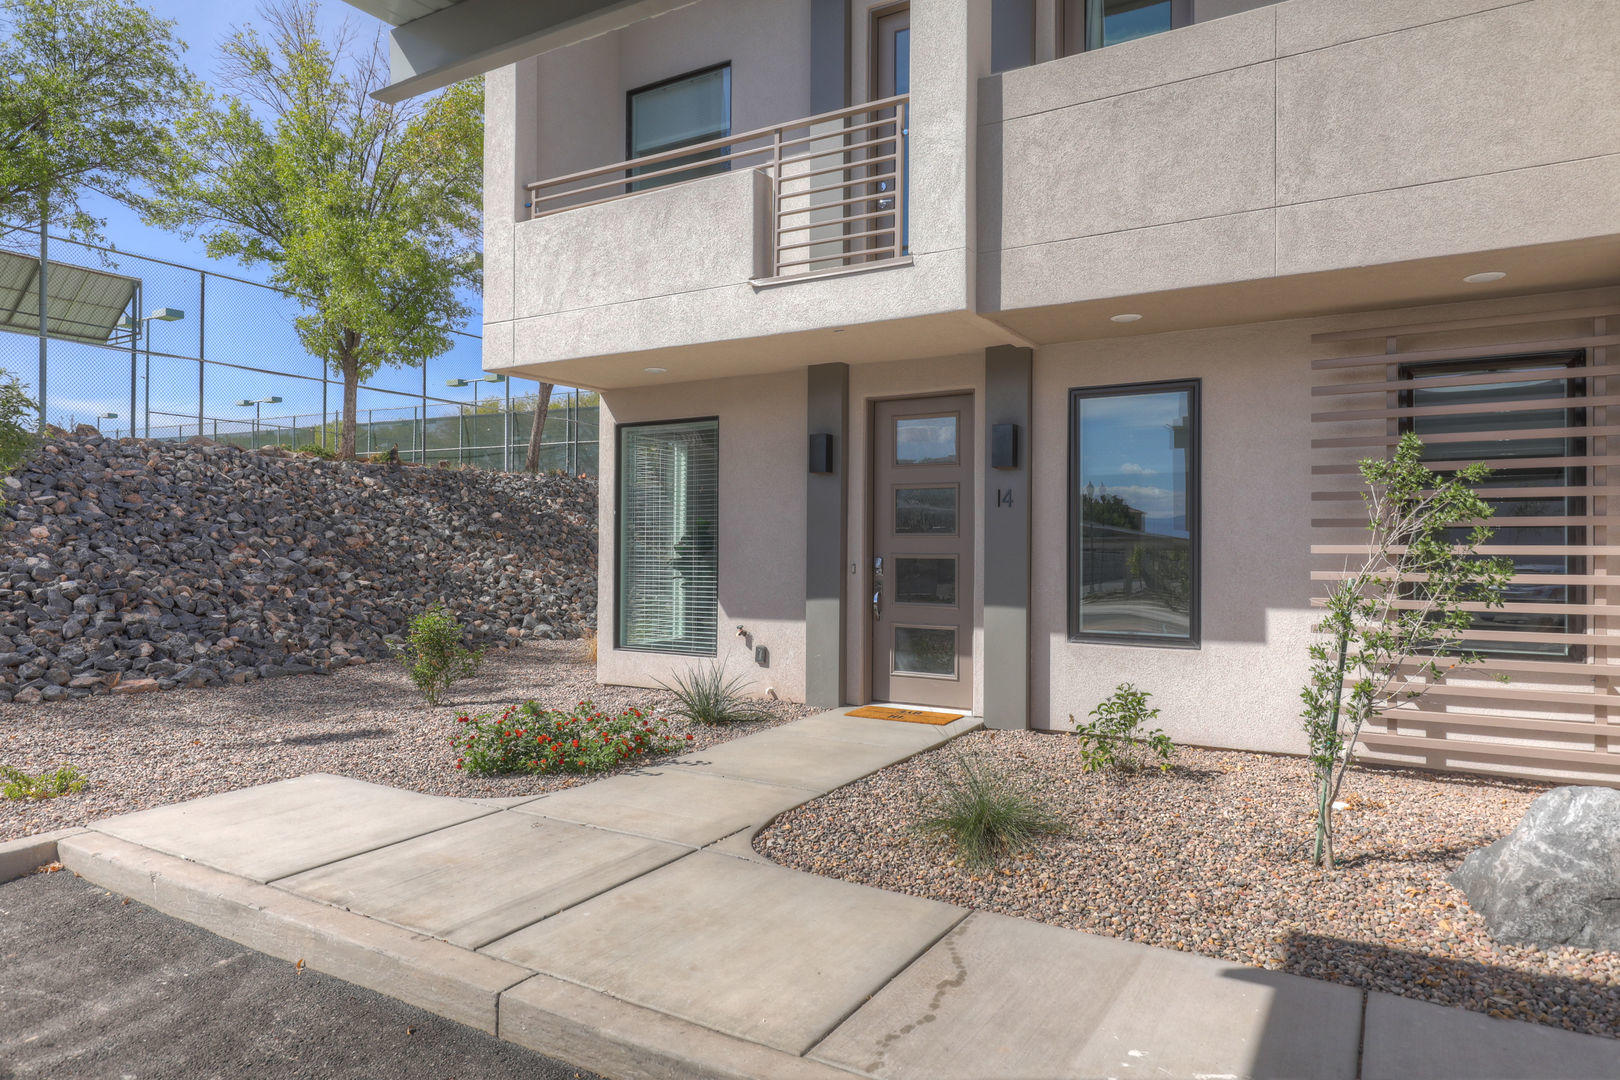 1122 S 1790 W Unit 14, St George Ut 84770